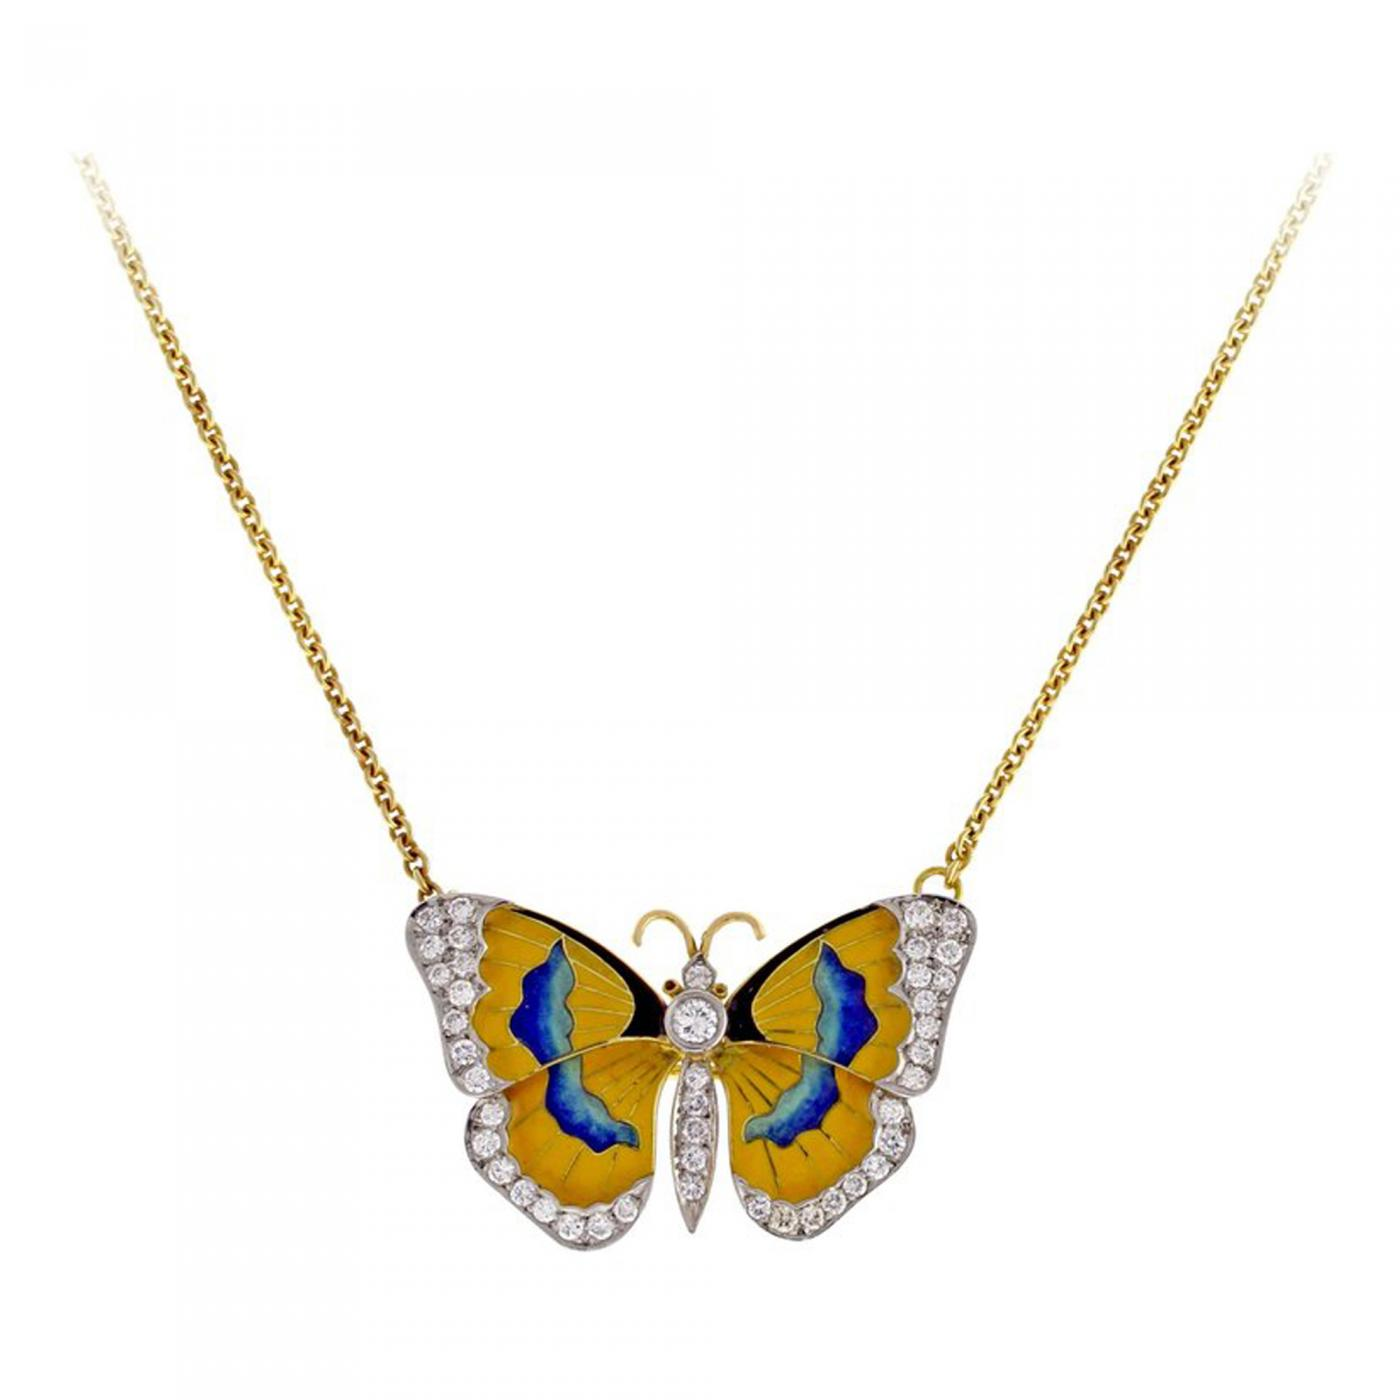 gold pendant necklace yellow jewelry sapphire s women butterfly diamond graff